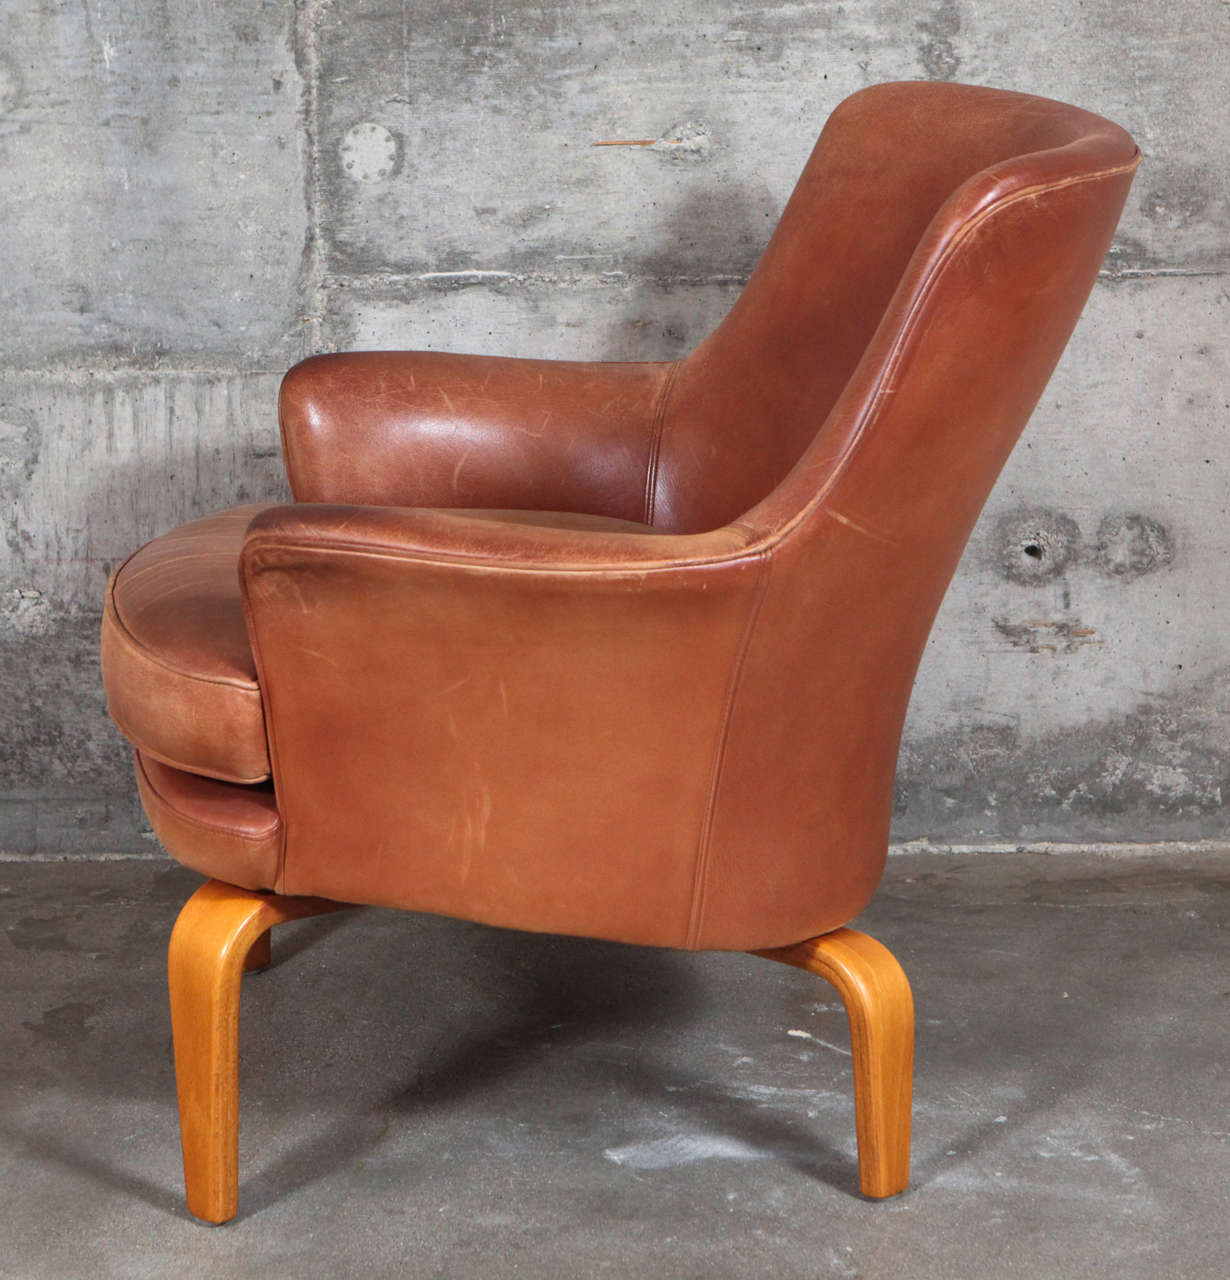 Pair of Arne Norell 'Pilot' Lounge Chairs 1